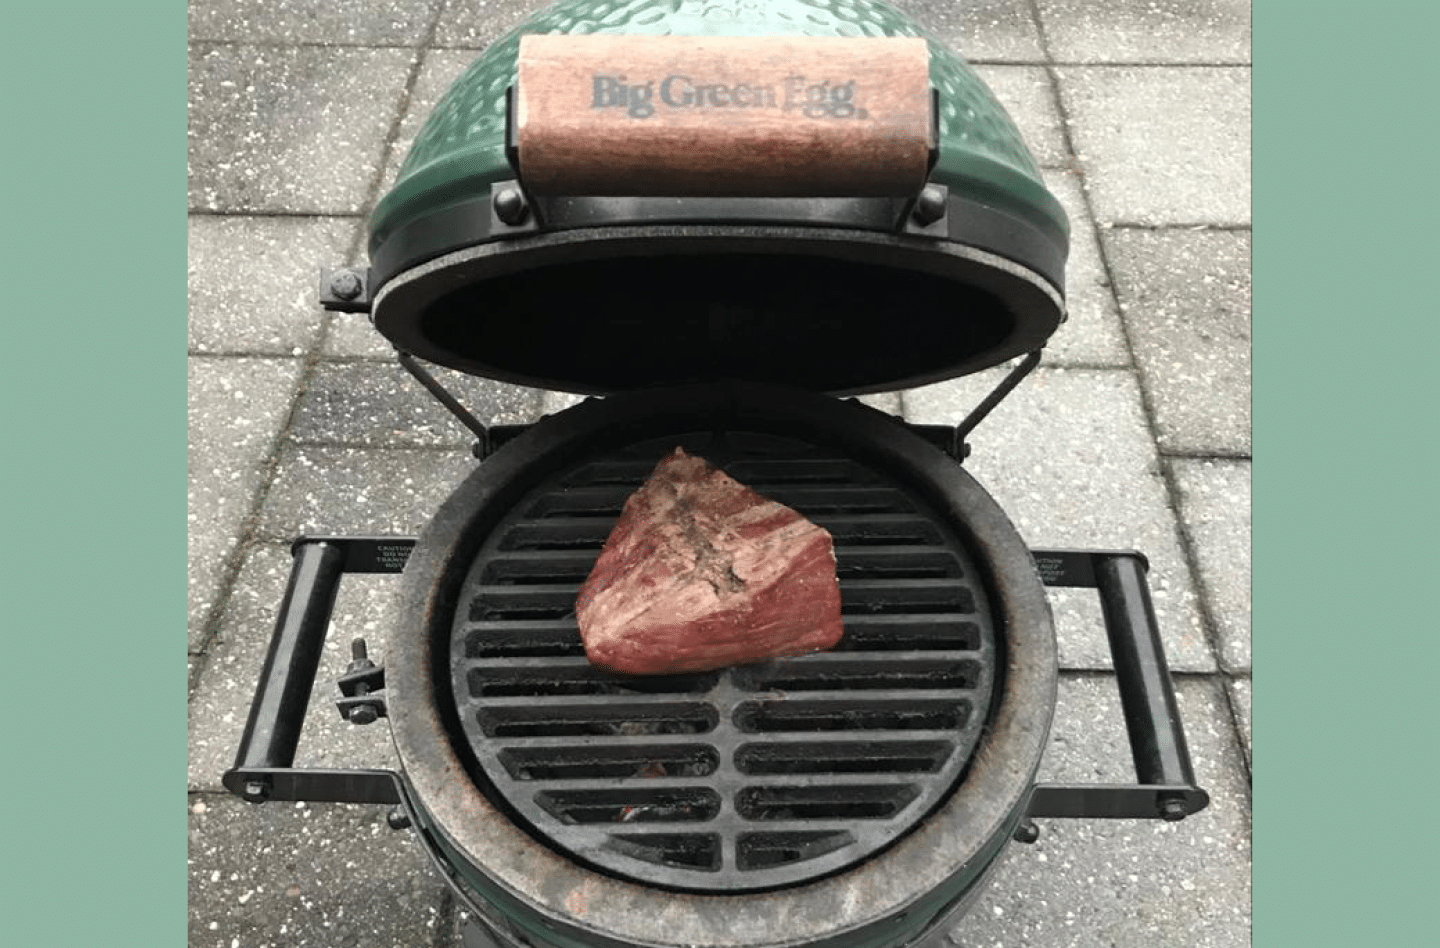 Rosbief op green egg